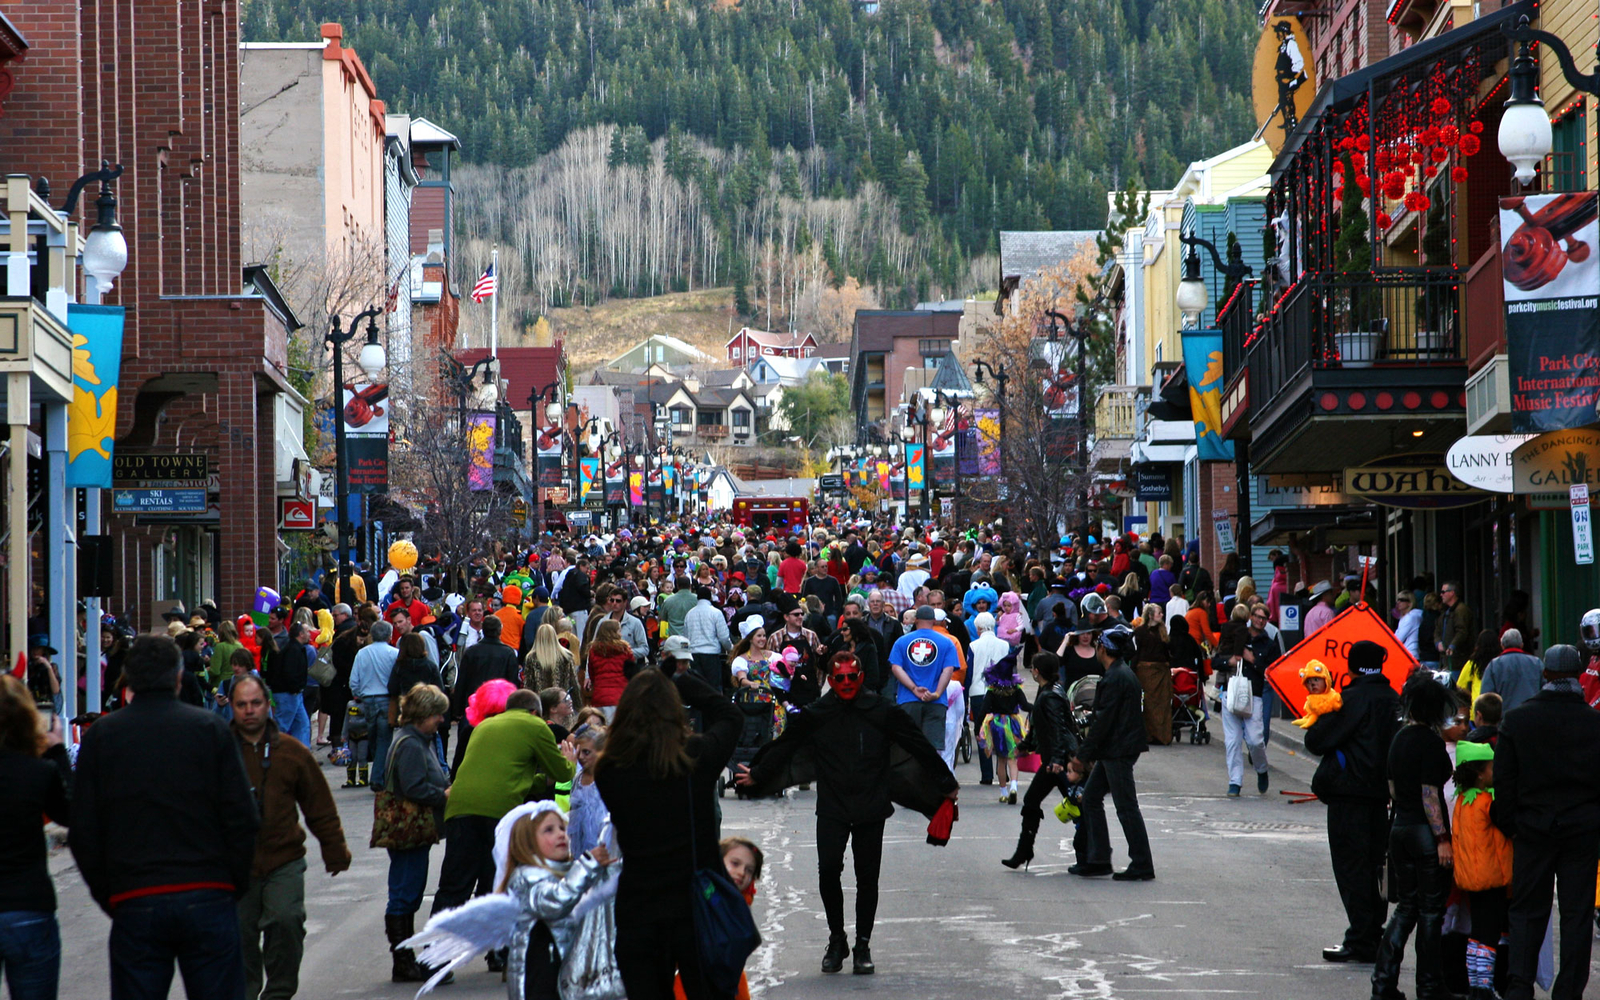 holloween parade in Park City, Utah